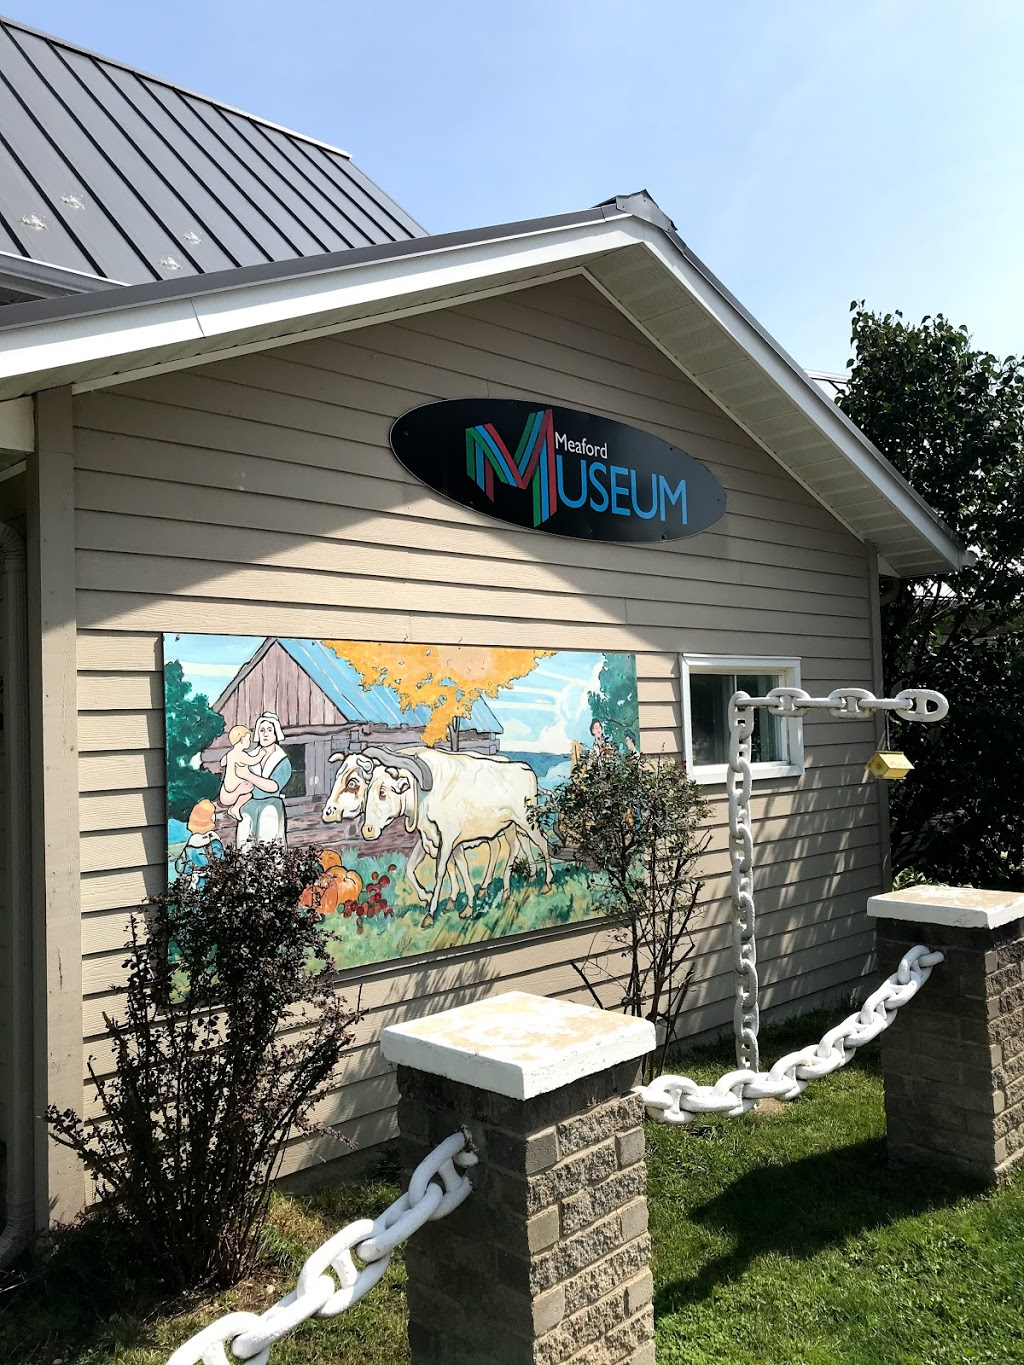 Meaford Museum | museum | 111 Bayfield St, Meaford, ON N4L 1N4, Canada | 5195385974 OR +1 519-538-5974